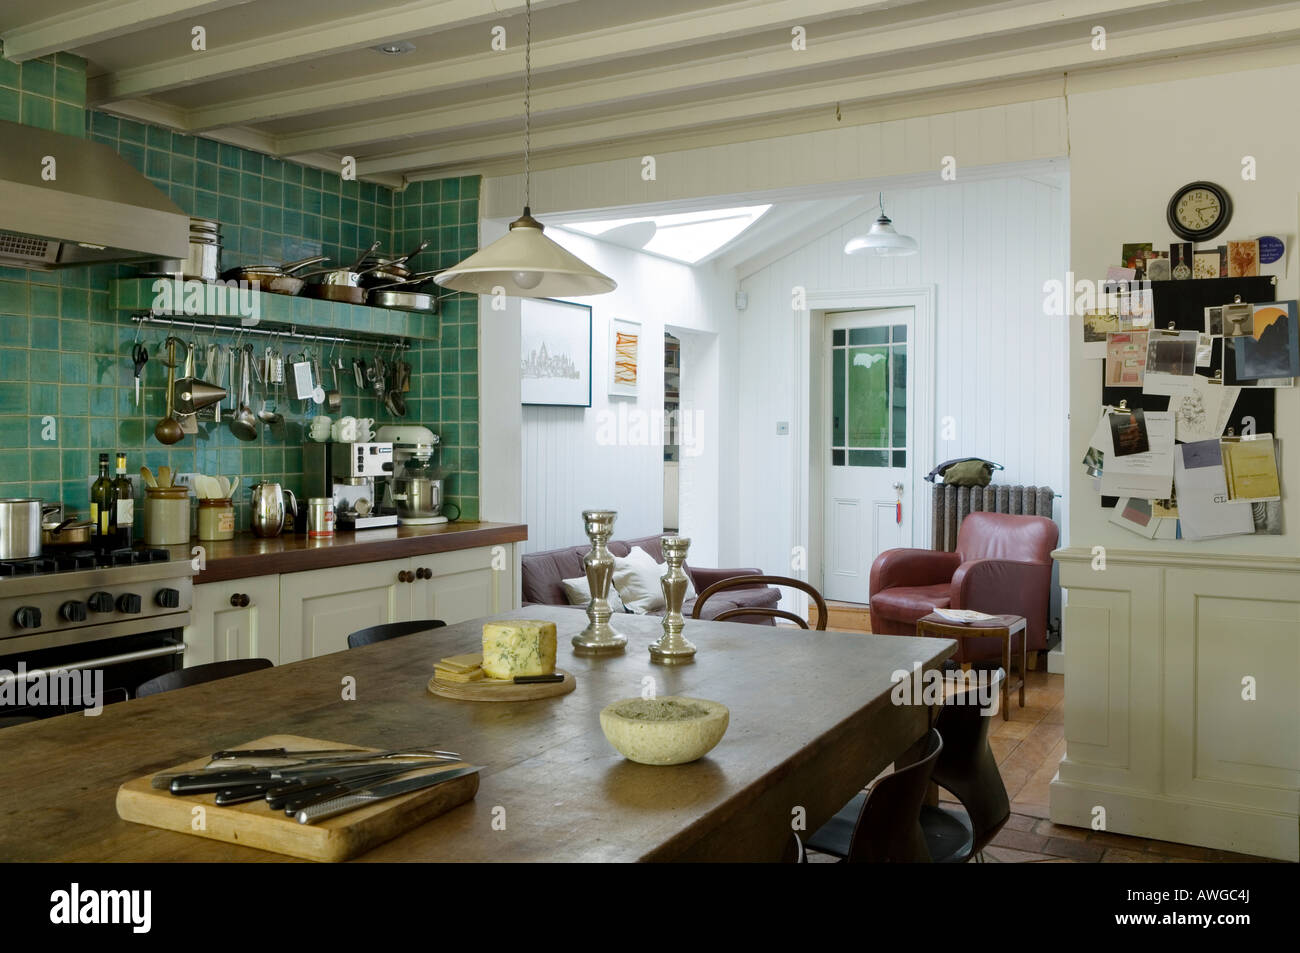 Open plan kitchen with turquoise tiles and beamed ceiling - Stock Image